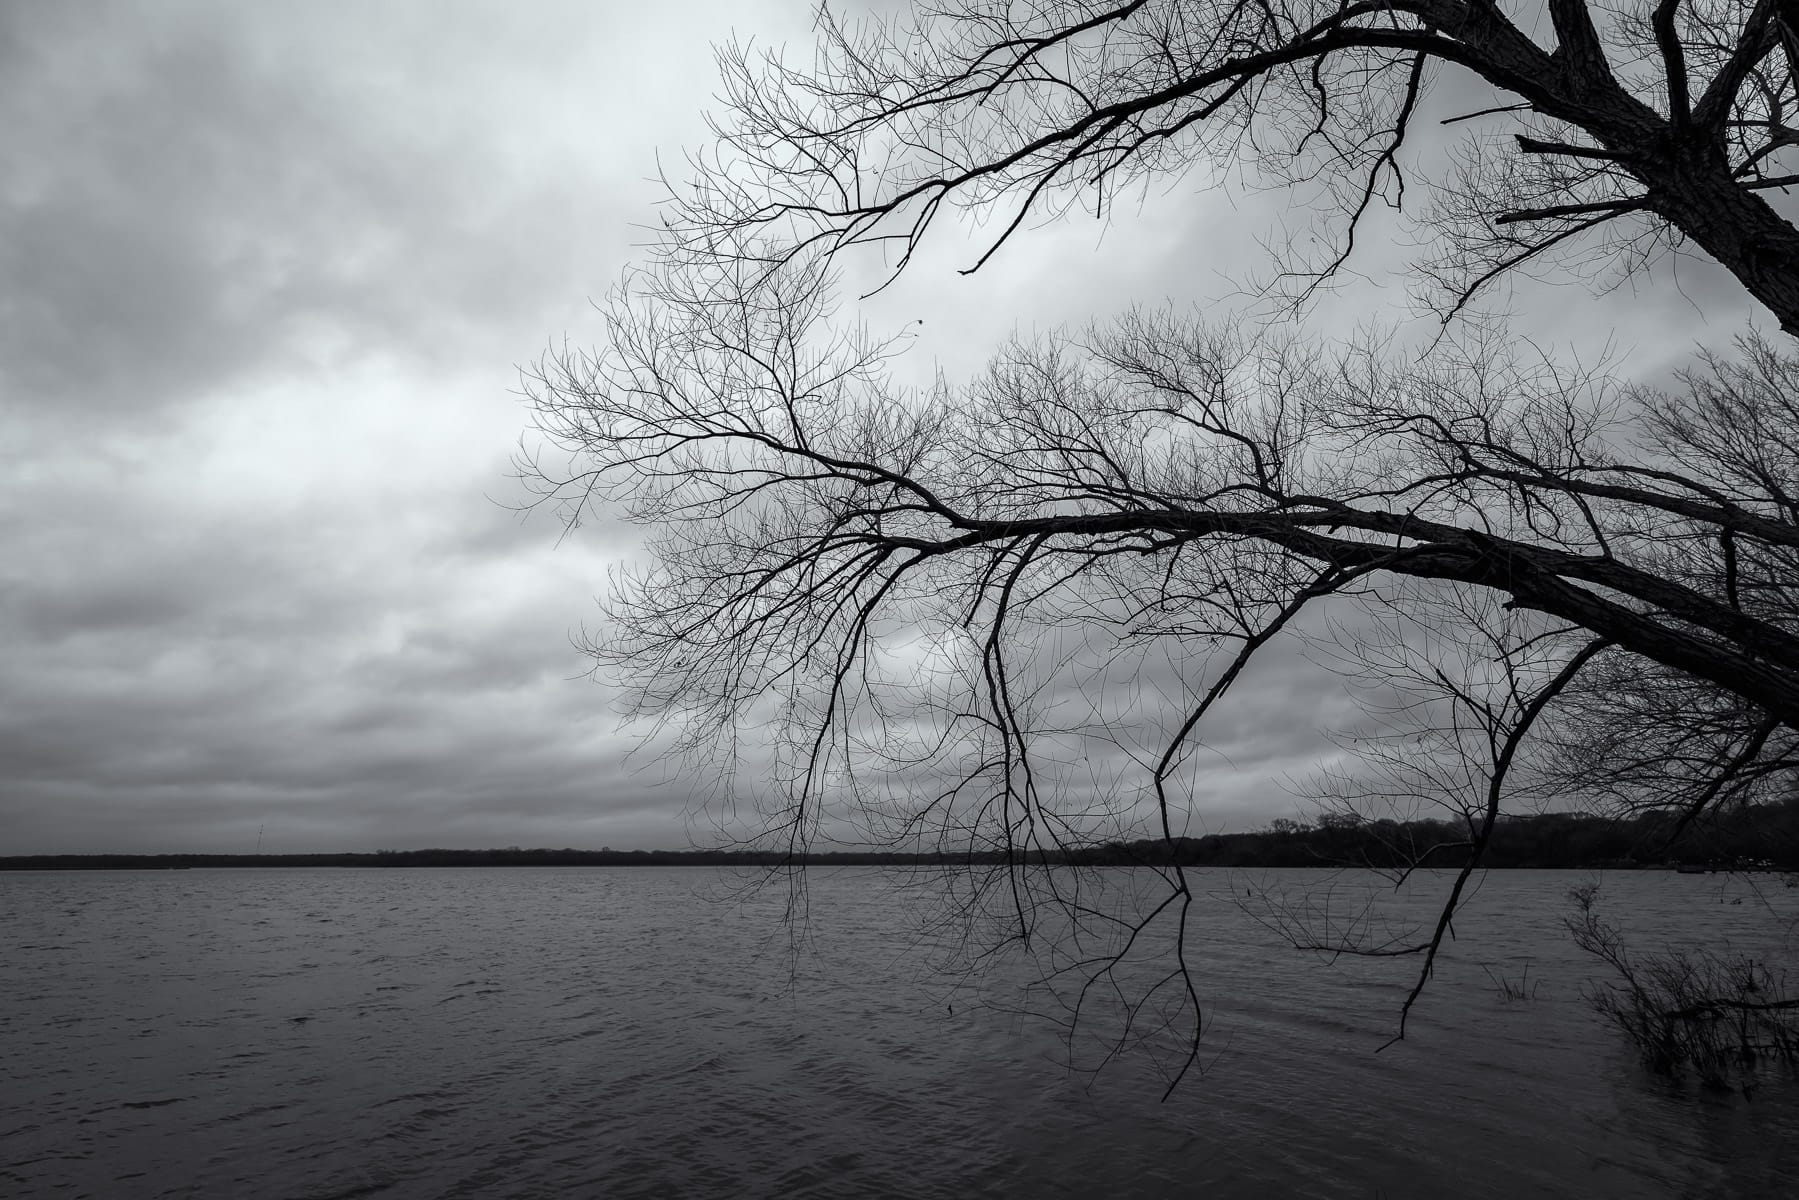 Tree branches reach over the lake at Texas' Fort Parker State Park on a cloudy, dreary day.